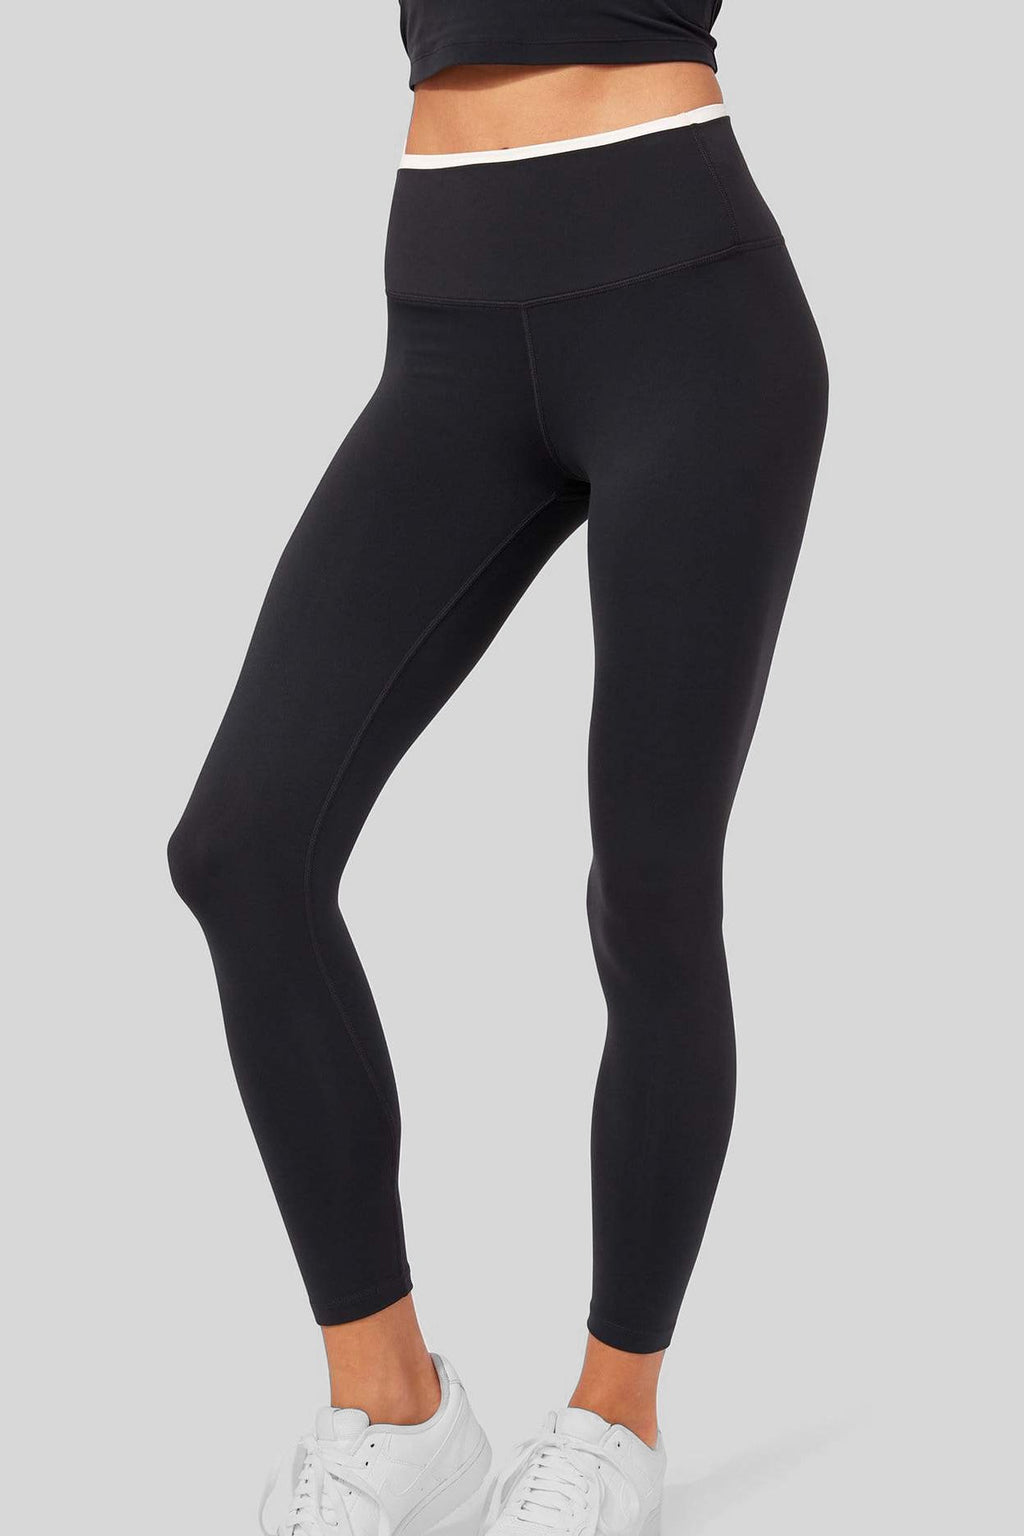 Amber High Waist Airweight 7/8 Legging